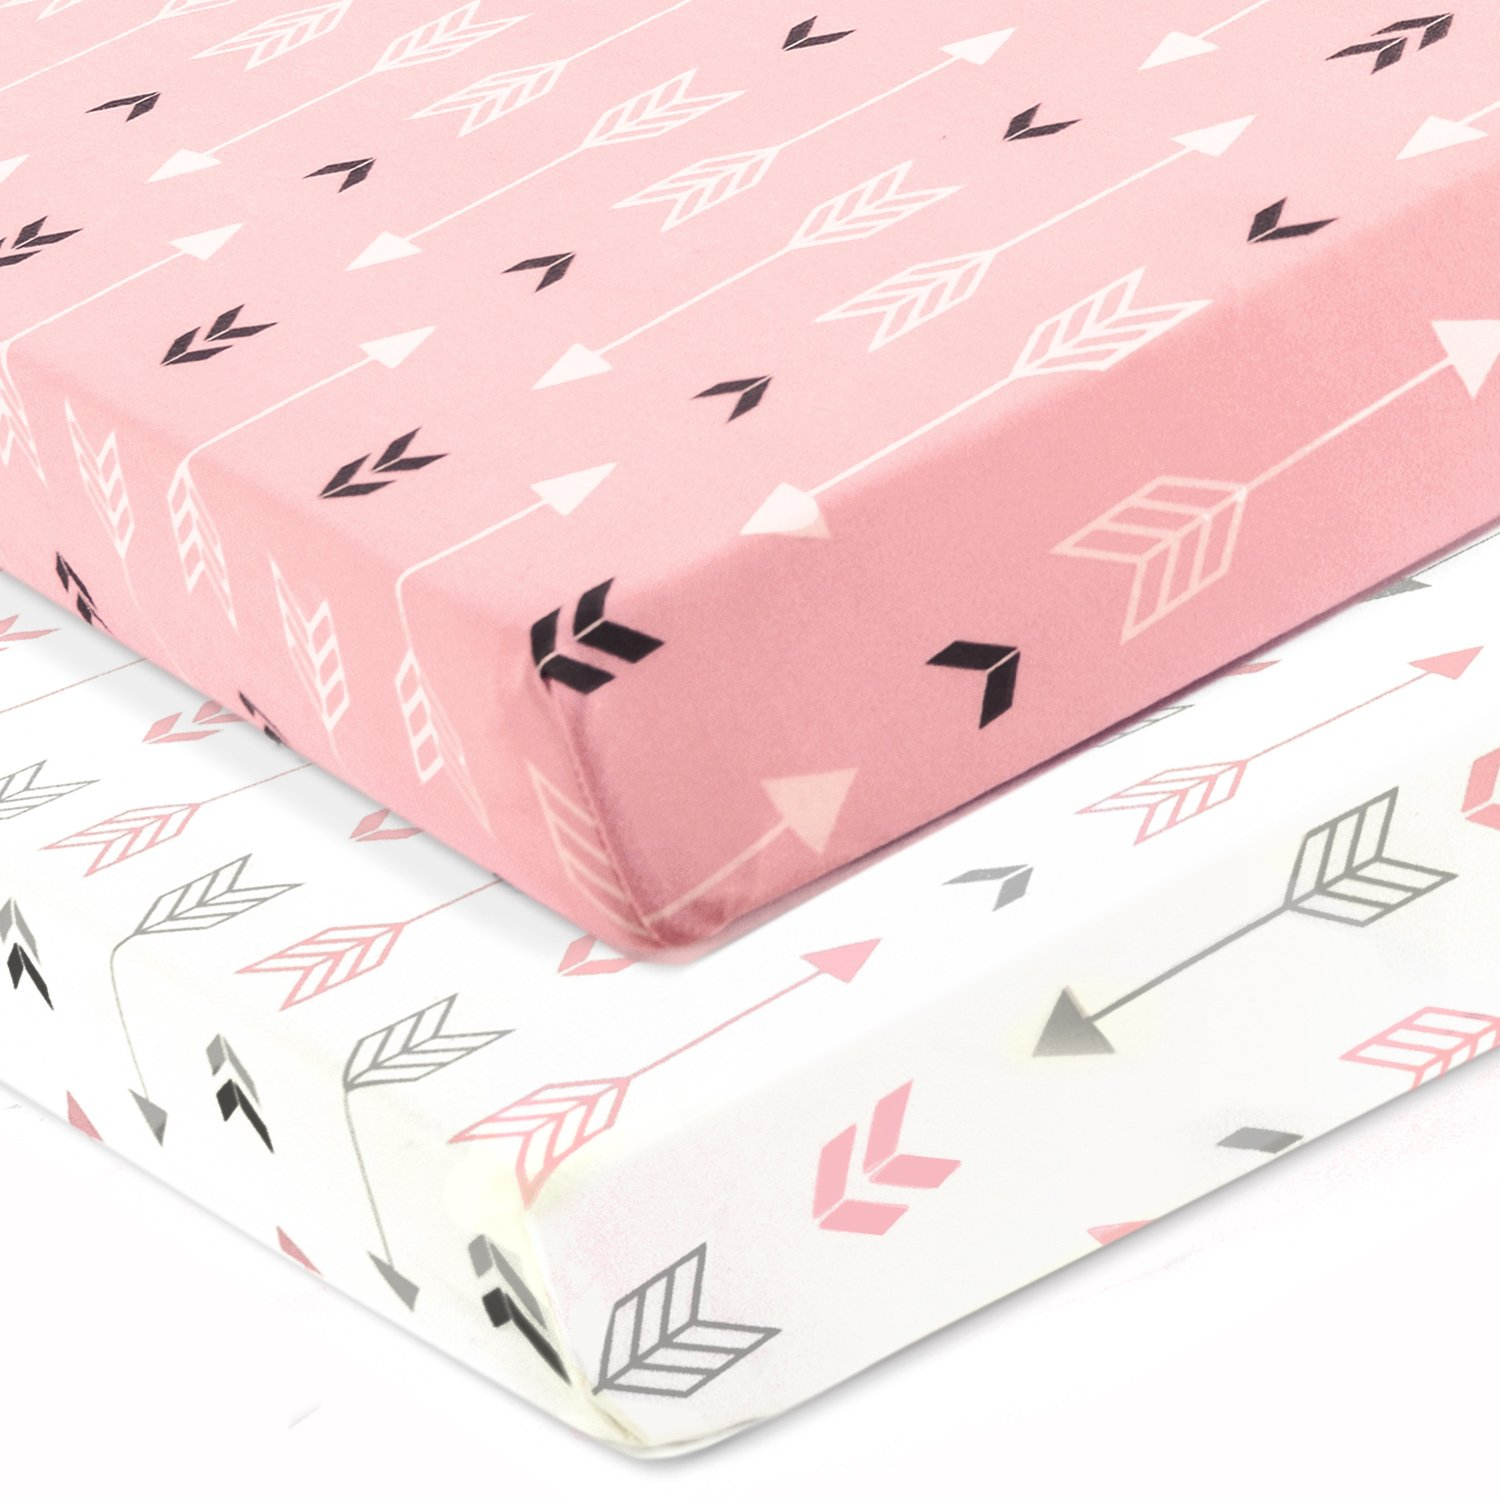 BROLEX Stretchy Fitted Crib Sheets Set 2 Pack Portable Crib Mattress Topper for Baby Girls Boys,Ultra Soft Jersey,Full Standard,Pink & White Arrow by BROLEX